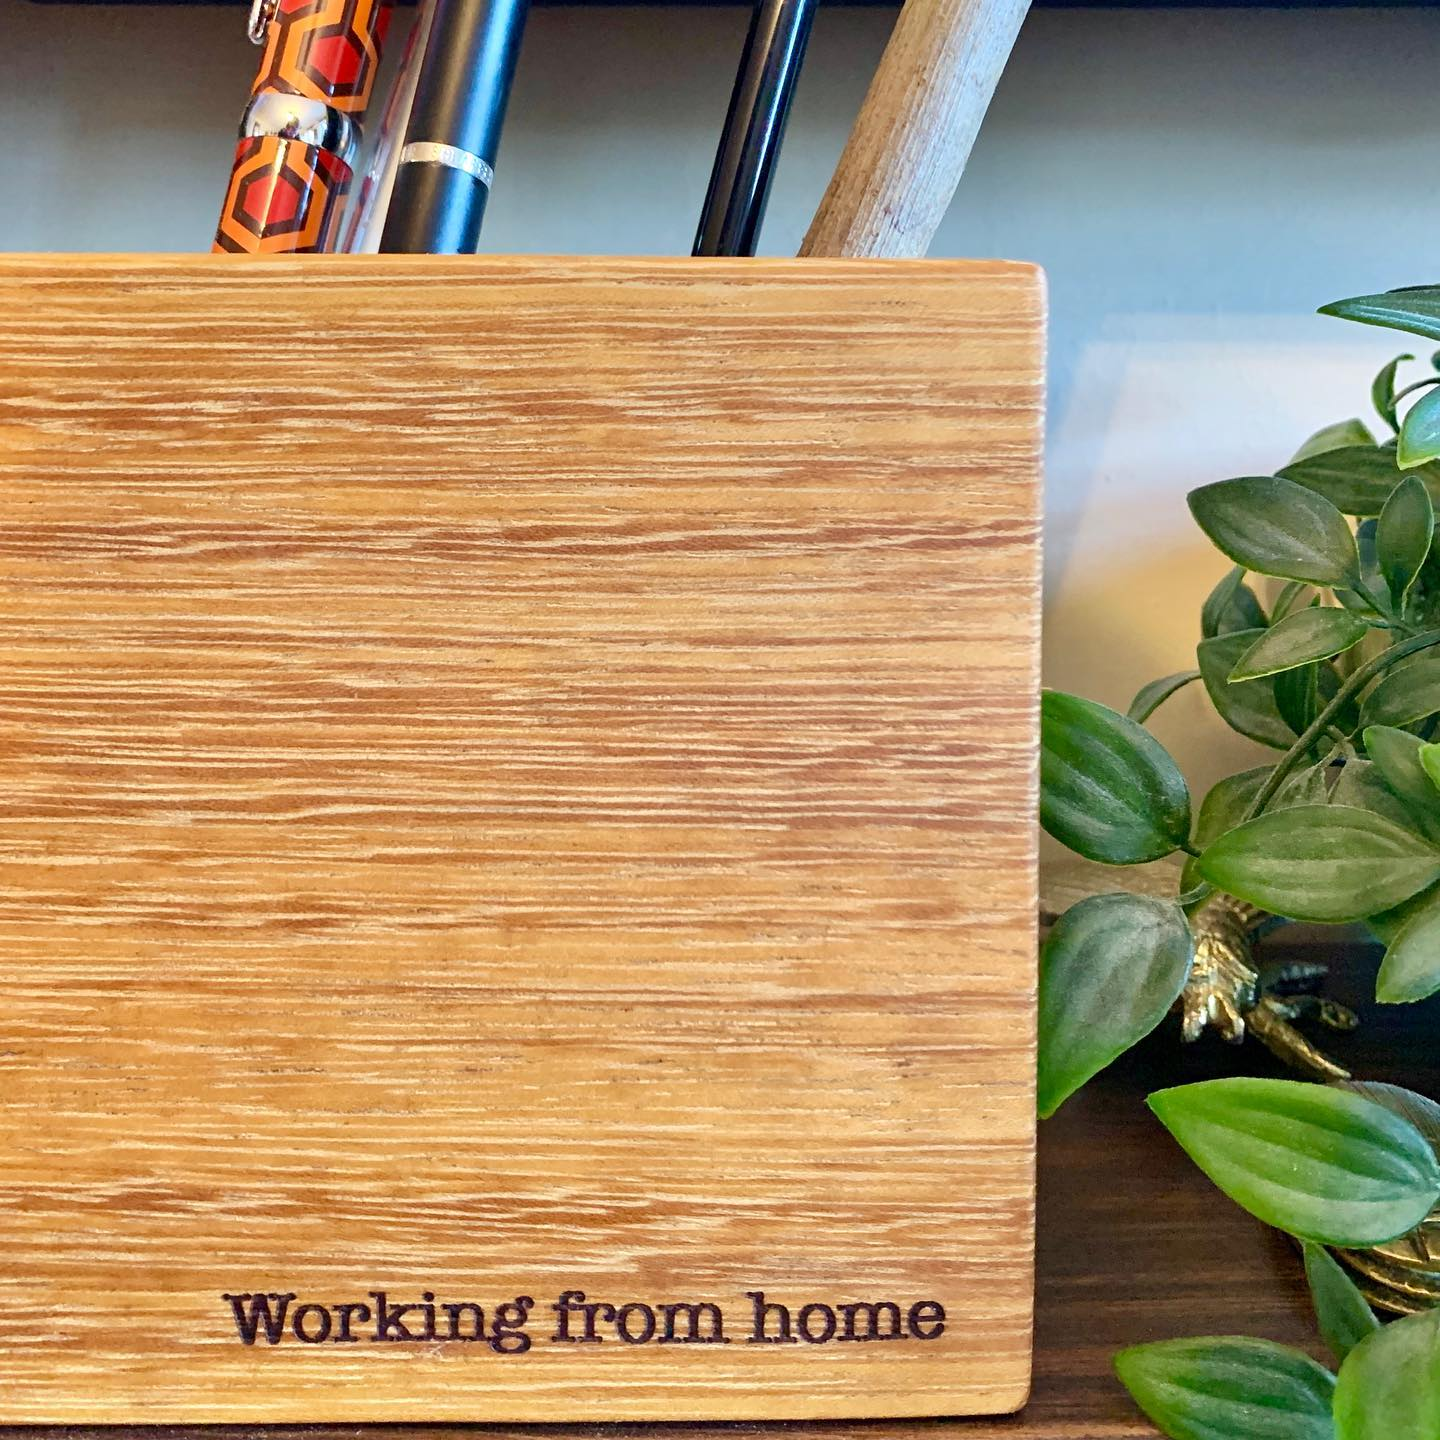 A little something we've been working on this week... ️These Iroko desk tidies are available with or without personalisation. Do get in contact if you have any requests. Desk Tidy-£14 +P&P £17 +P&P for a personalised one...#workingfromhome #personalised #inthistogether #homewares #office #desktidy #gingerandtweed #homeschooling